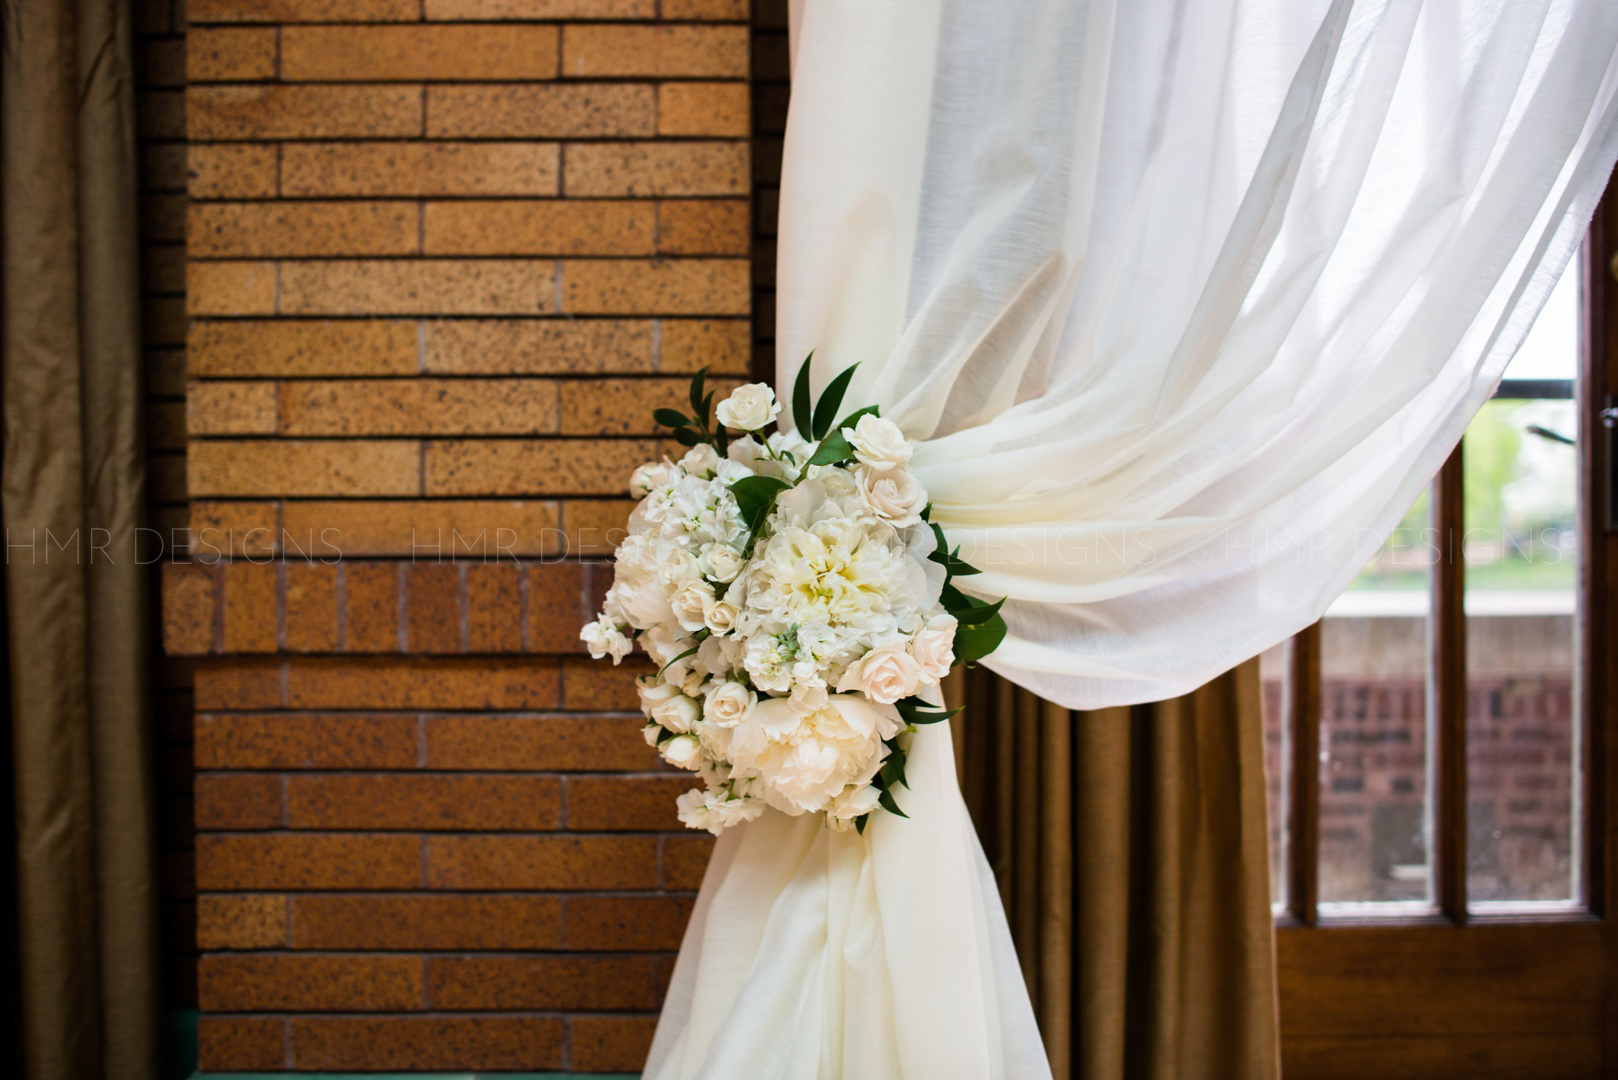 Drapes are tied back with lush spring floral at a spring wedding at Cafe Brauer in Chicago by HMR Designs